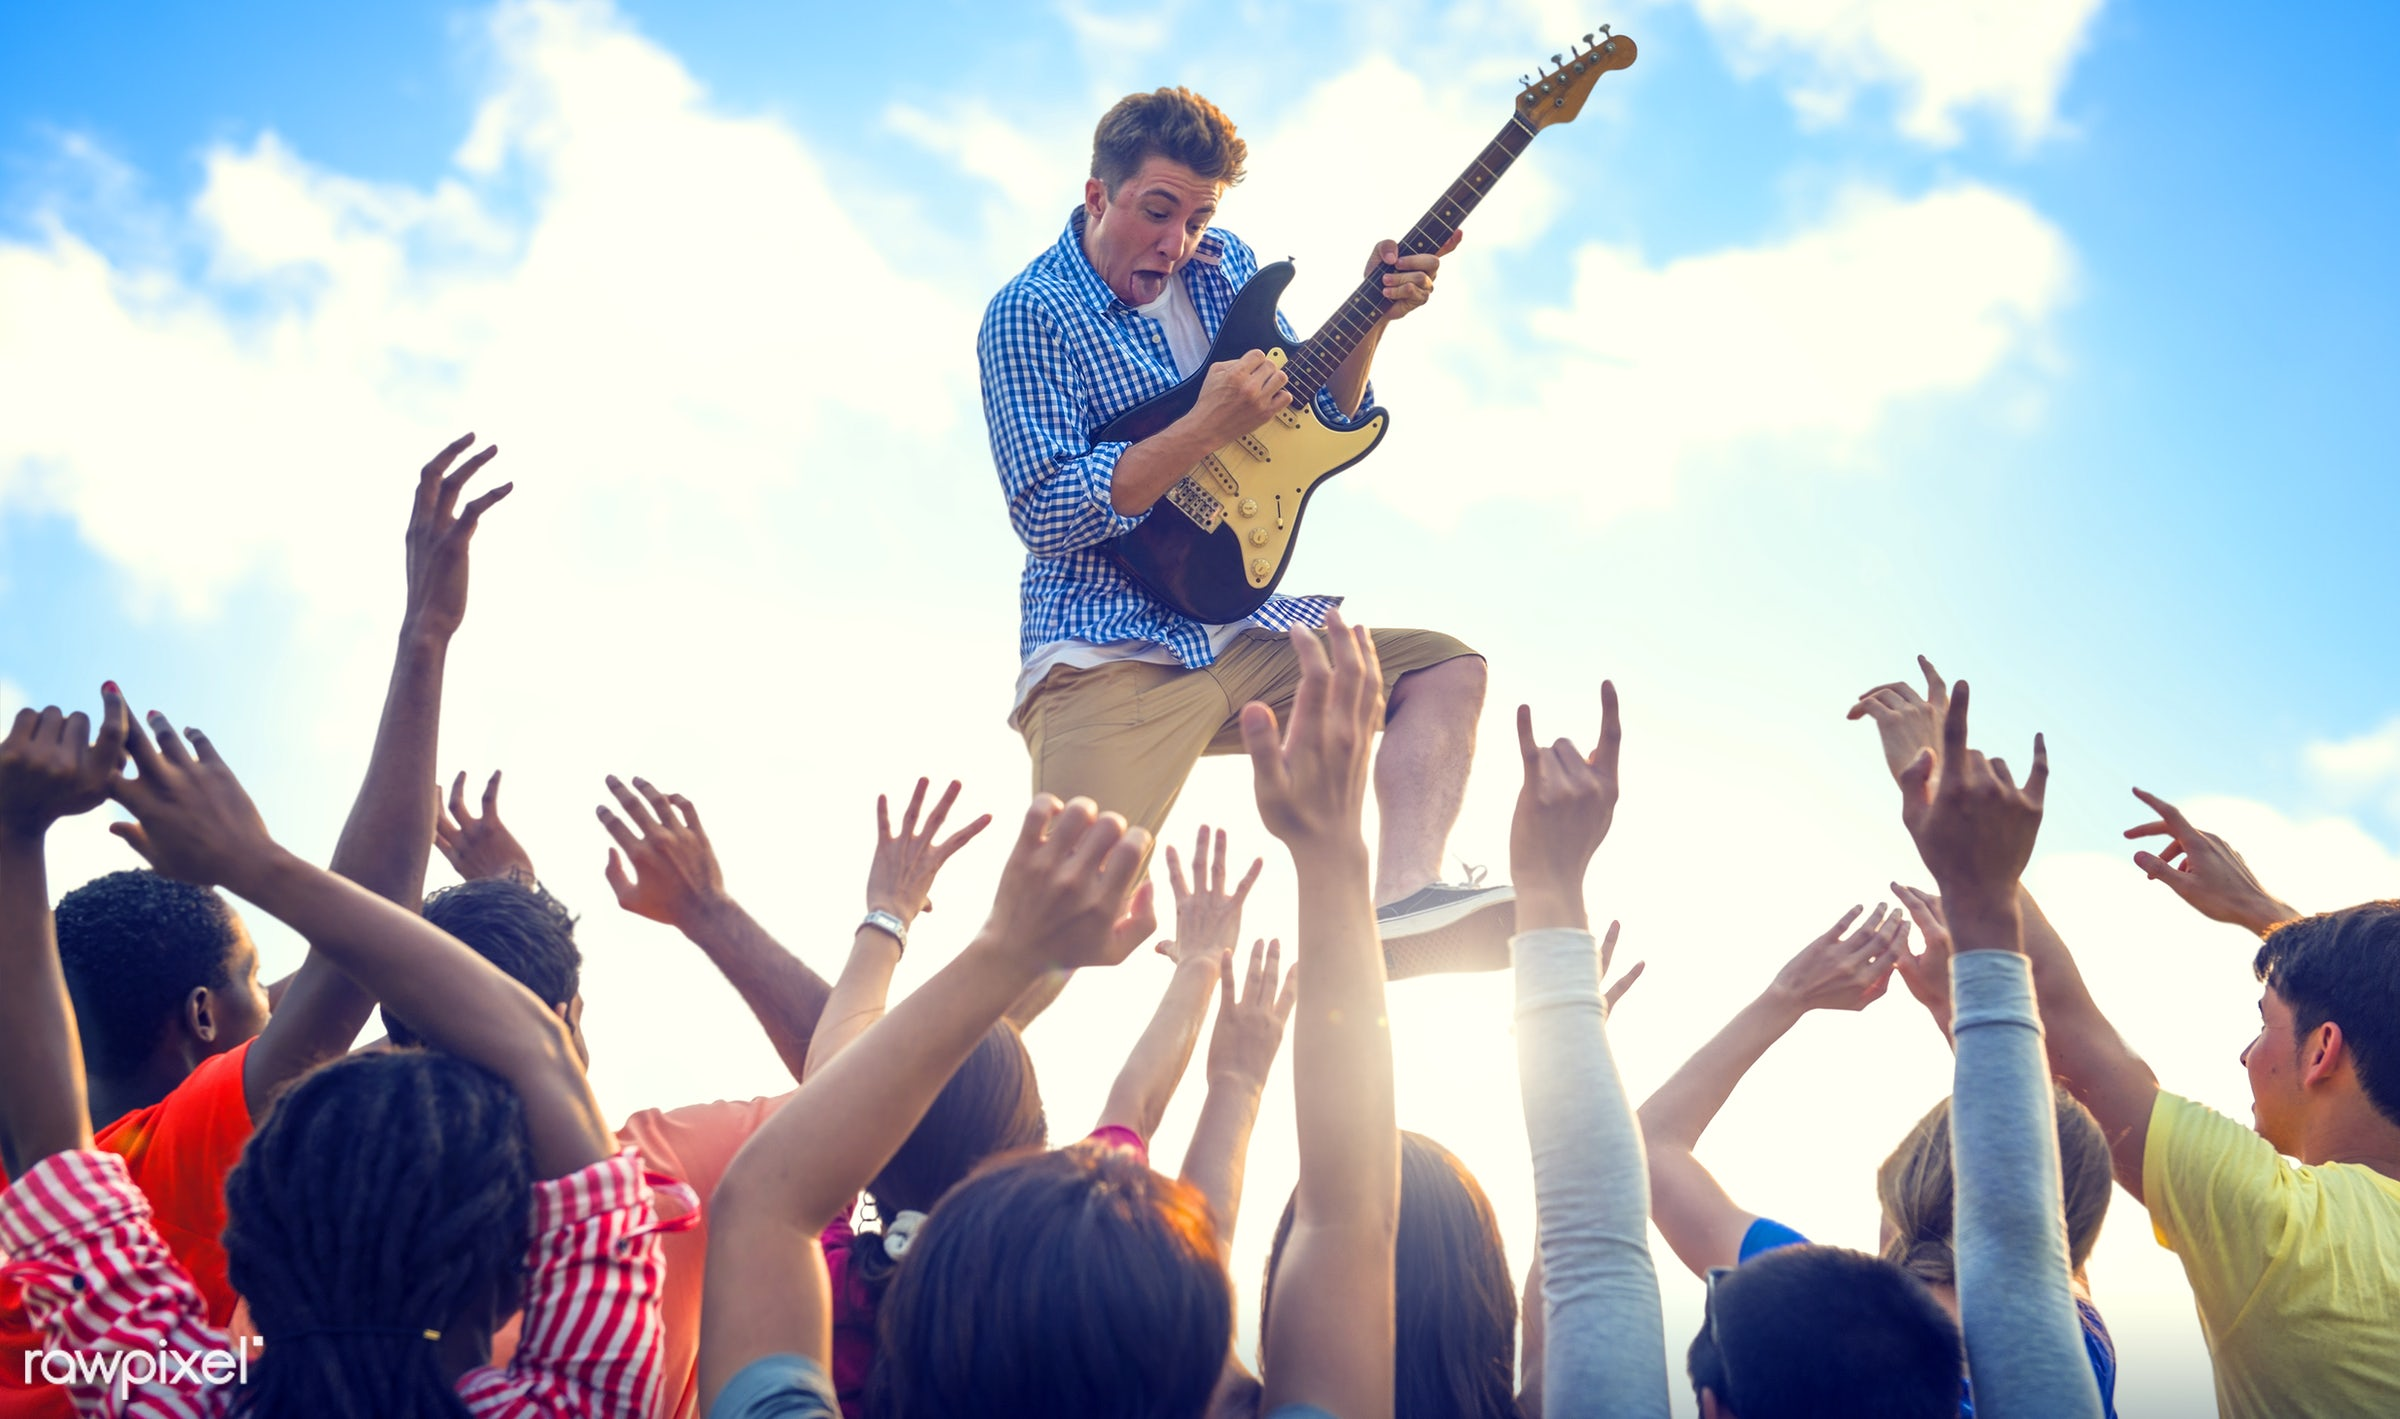 concert, adolescence, audience, beach, beach party, carefree, celebration, cheerful, dancing, ecstatic, enjoyment,...